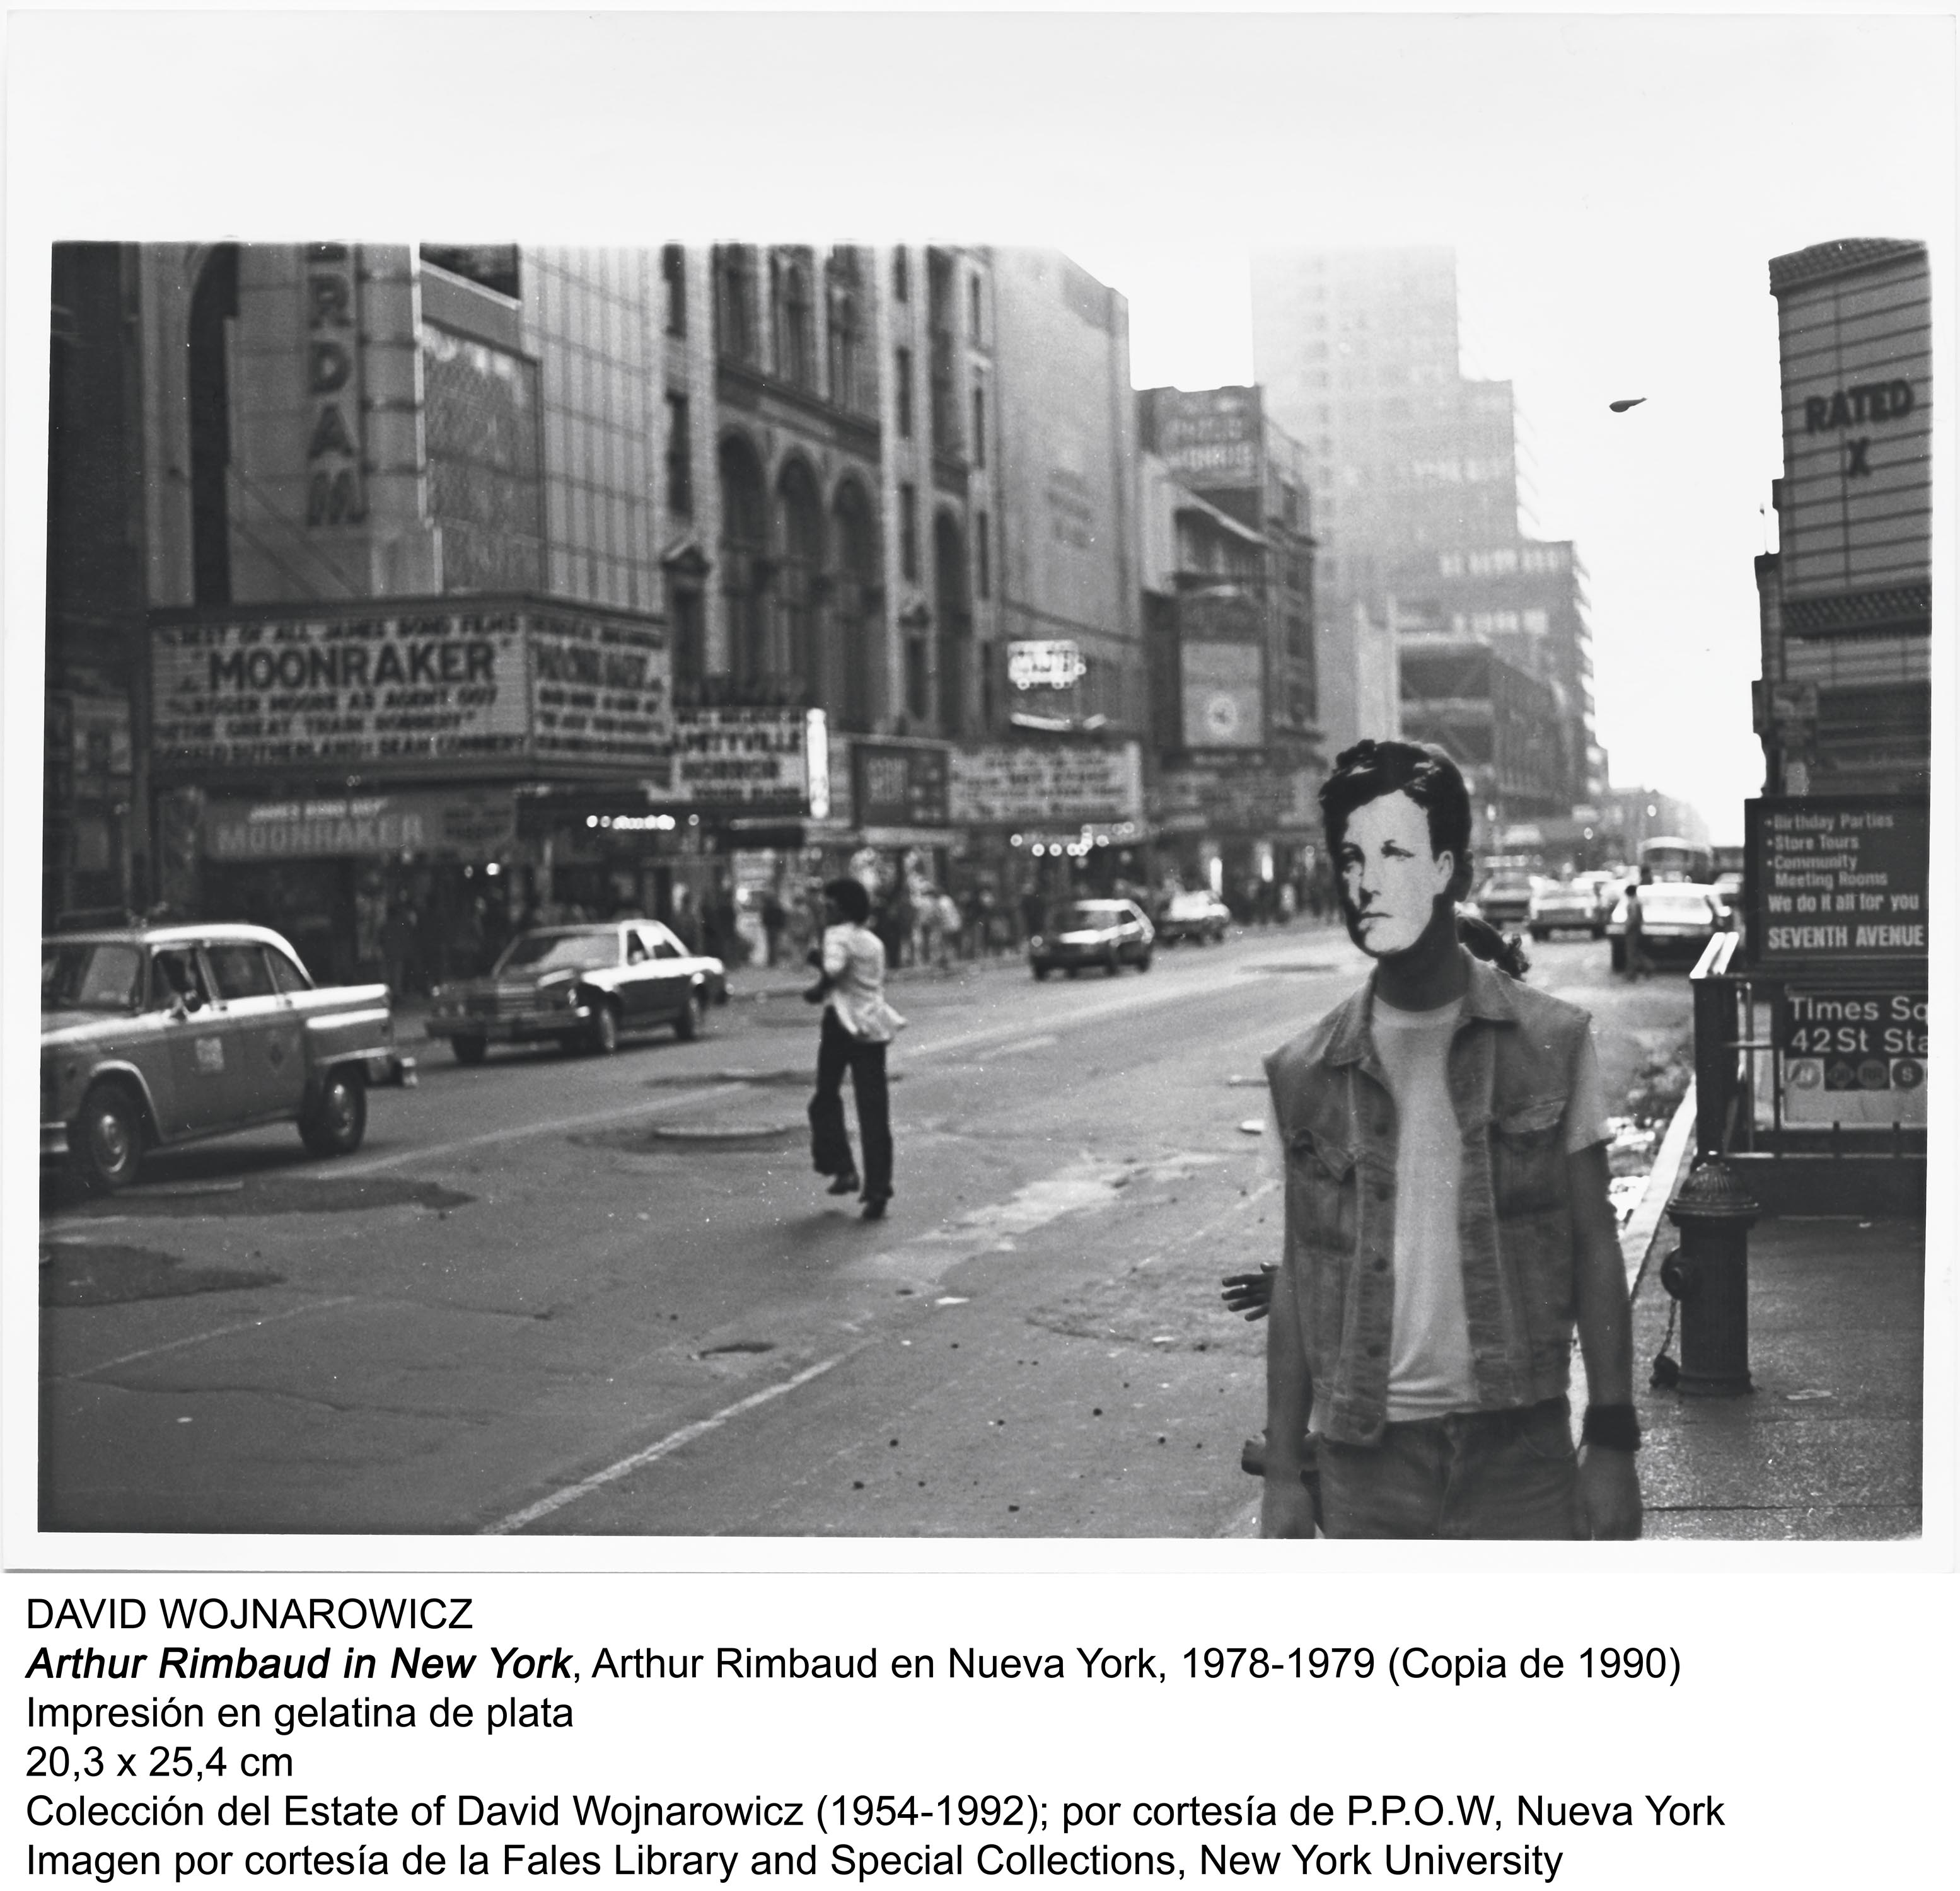 Arthur Rimbaud in New York 1978-1979 (1990) - David Wojnarowicz